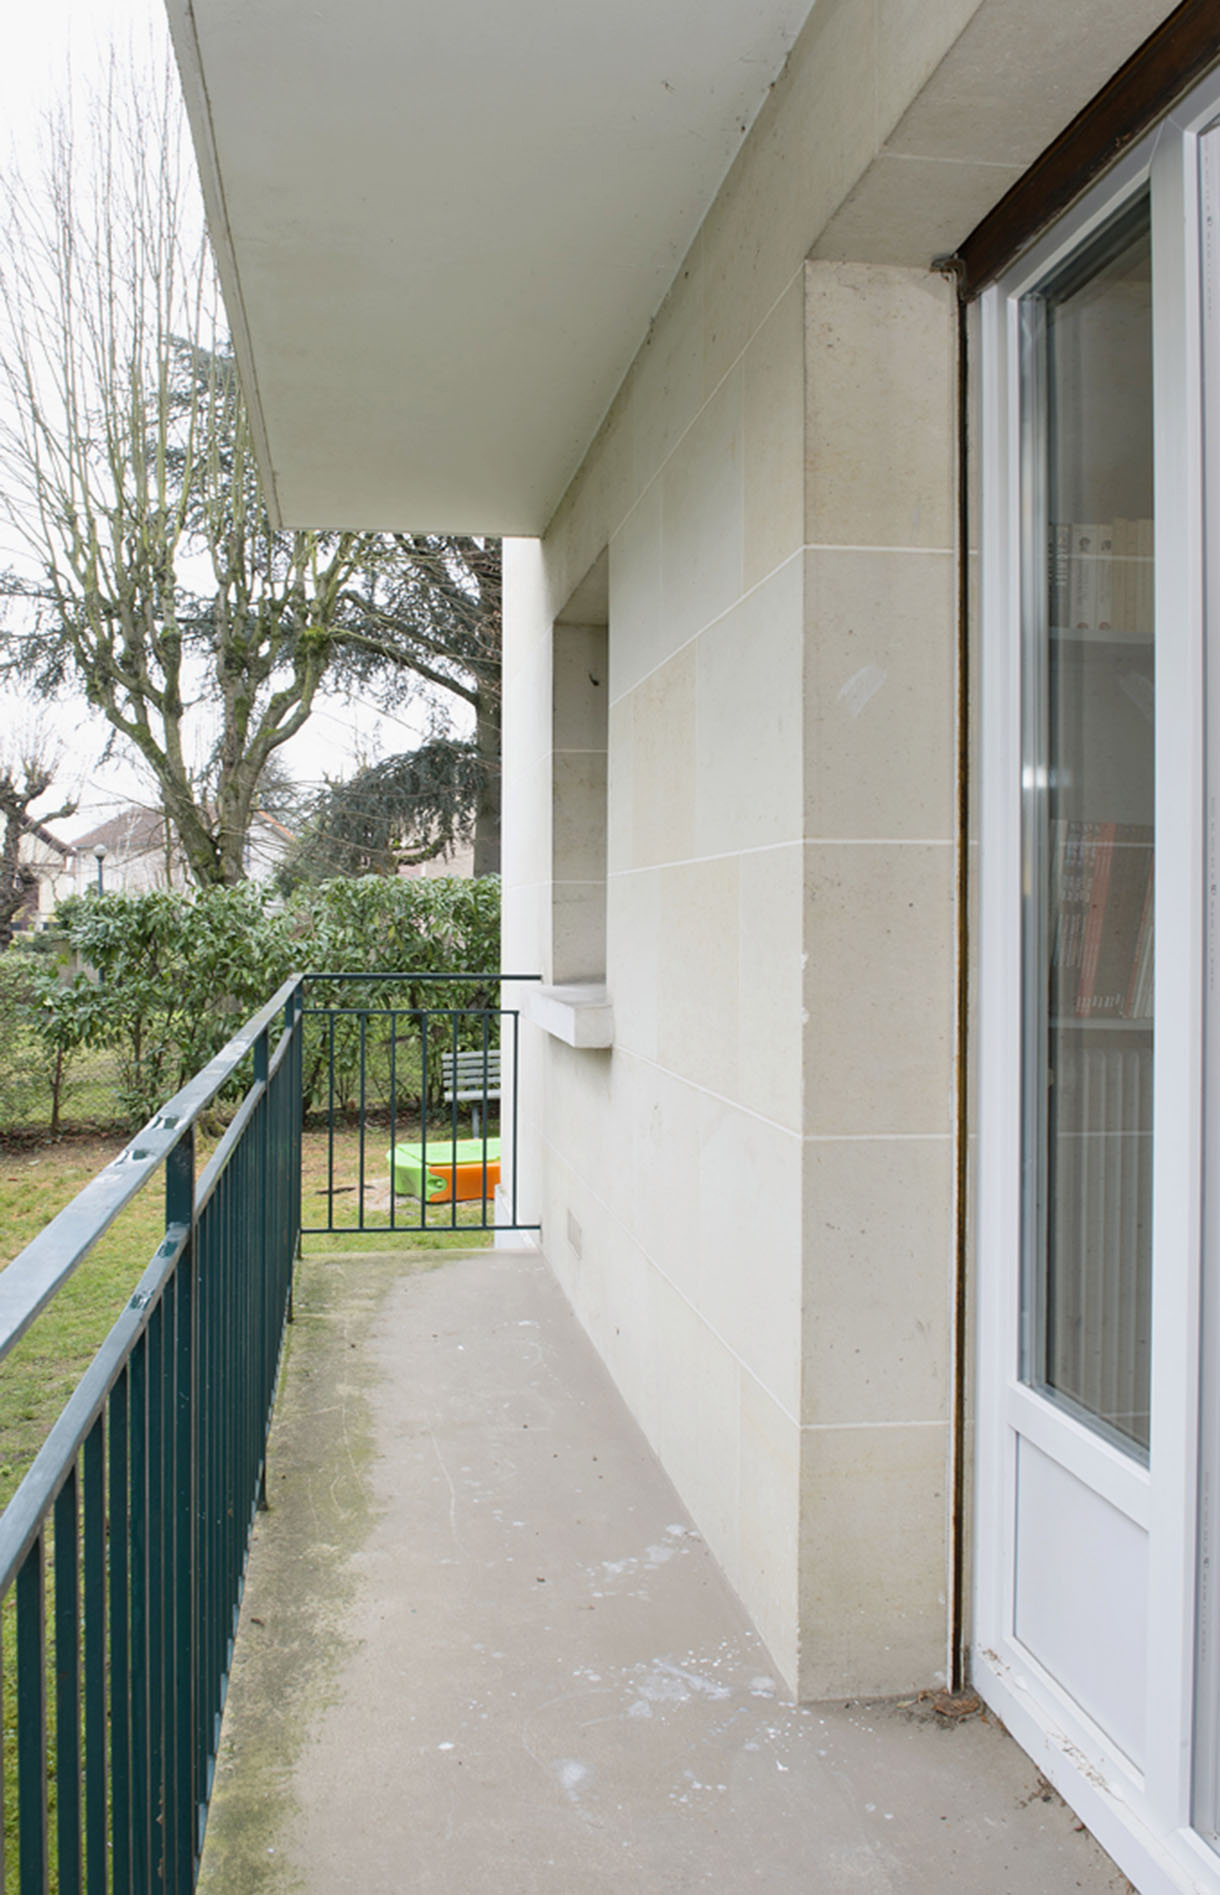 Trois id es d co pour am nager un balcon maison cr ative for Decoration de balcon